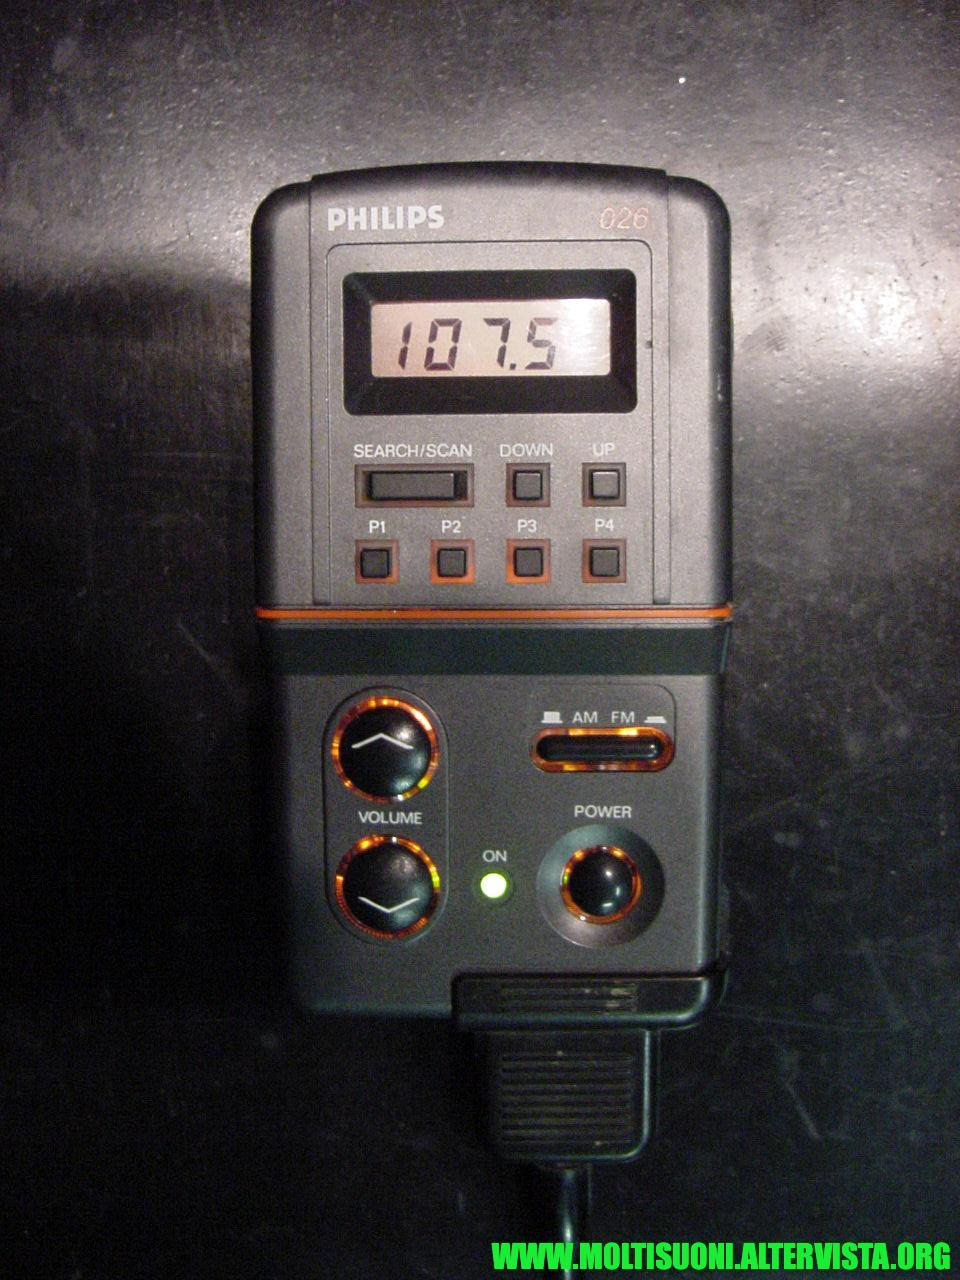 Philips split radio DC 026 - moltisuoni 3